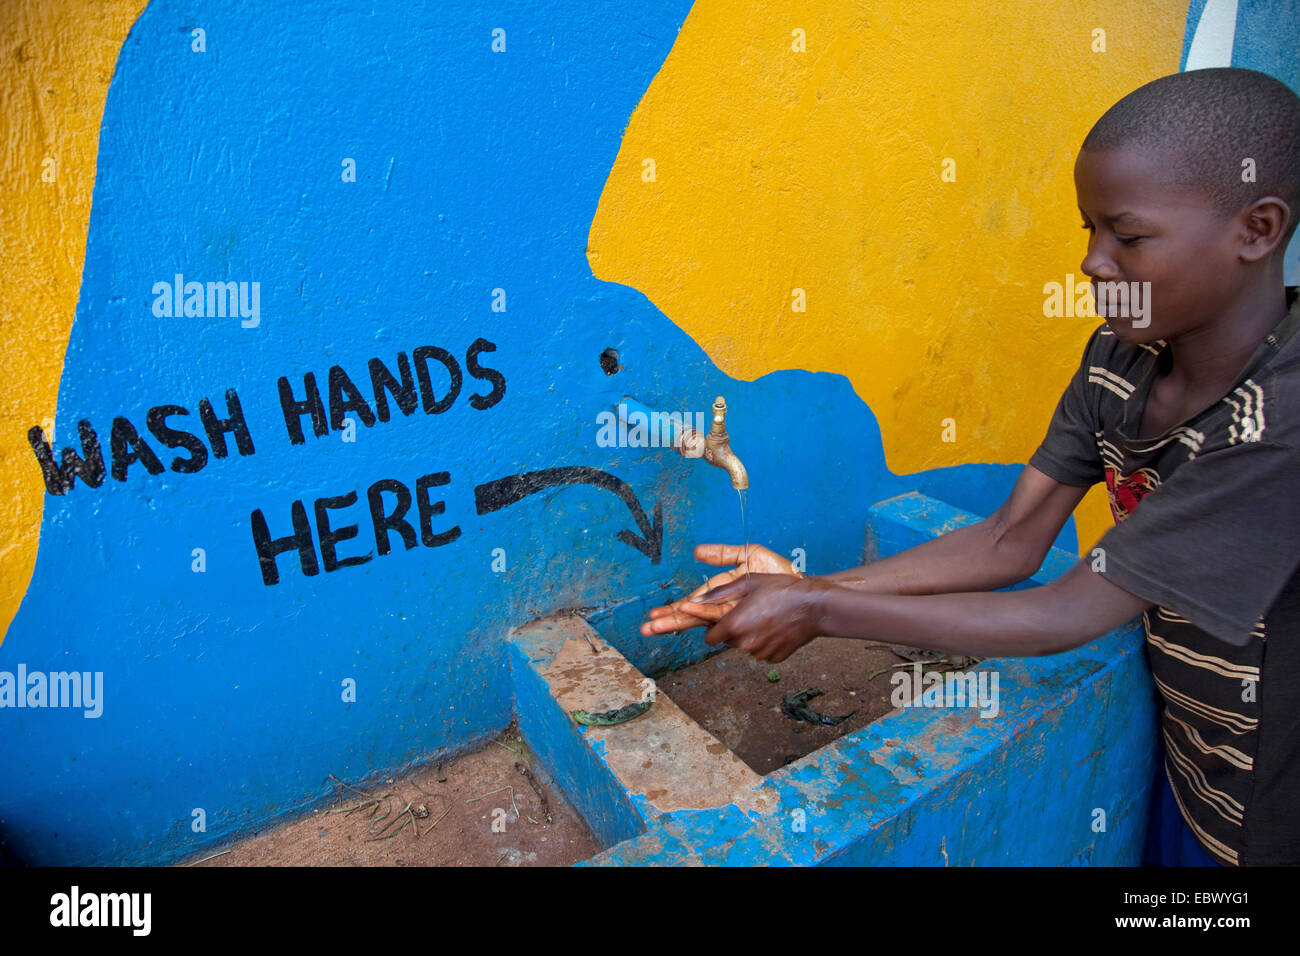 boy is washing his hands at a tap, the painted words on the wall say 'wash hands here', Uganda, Jinja - Stock Image